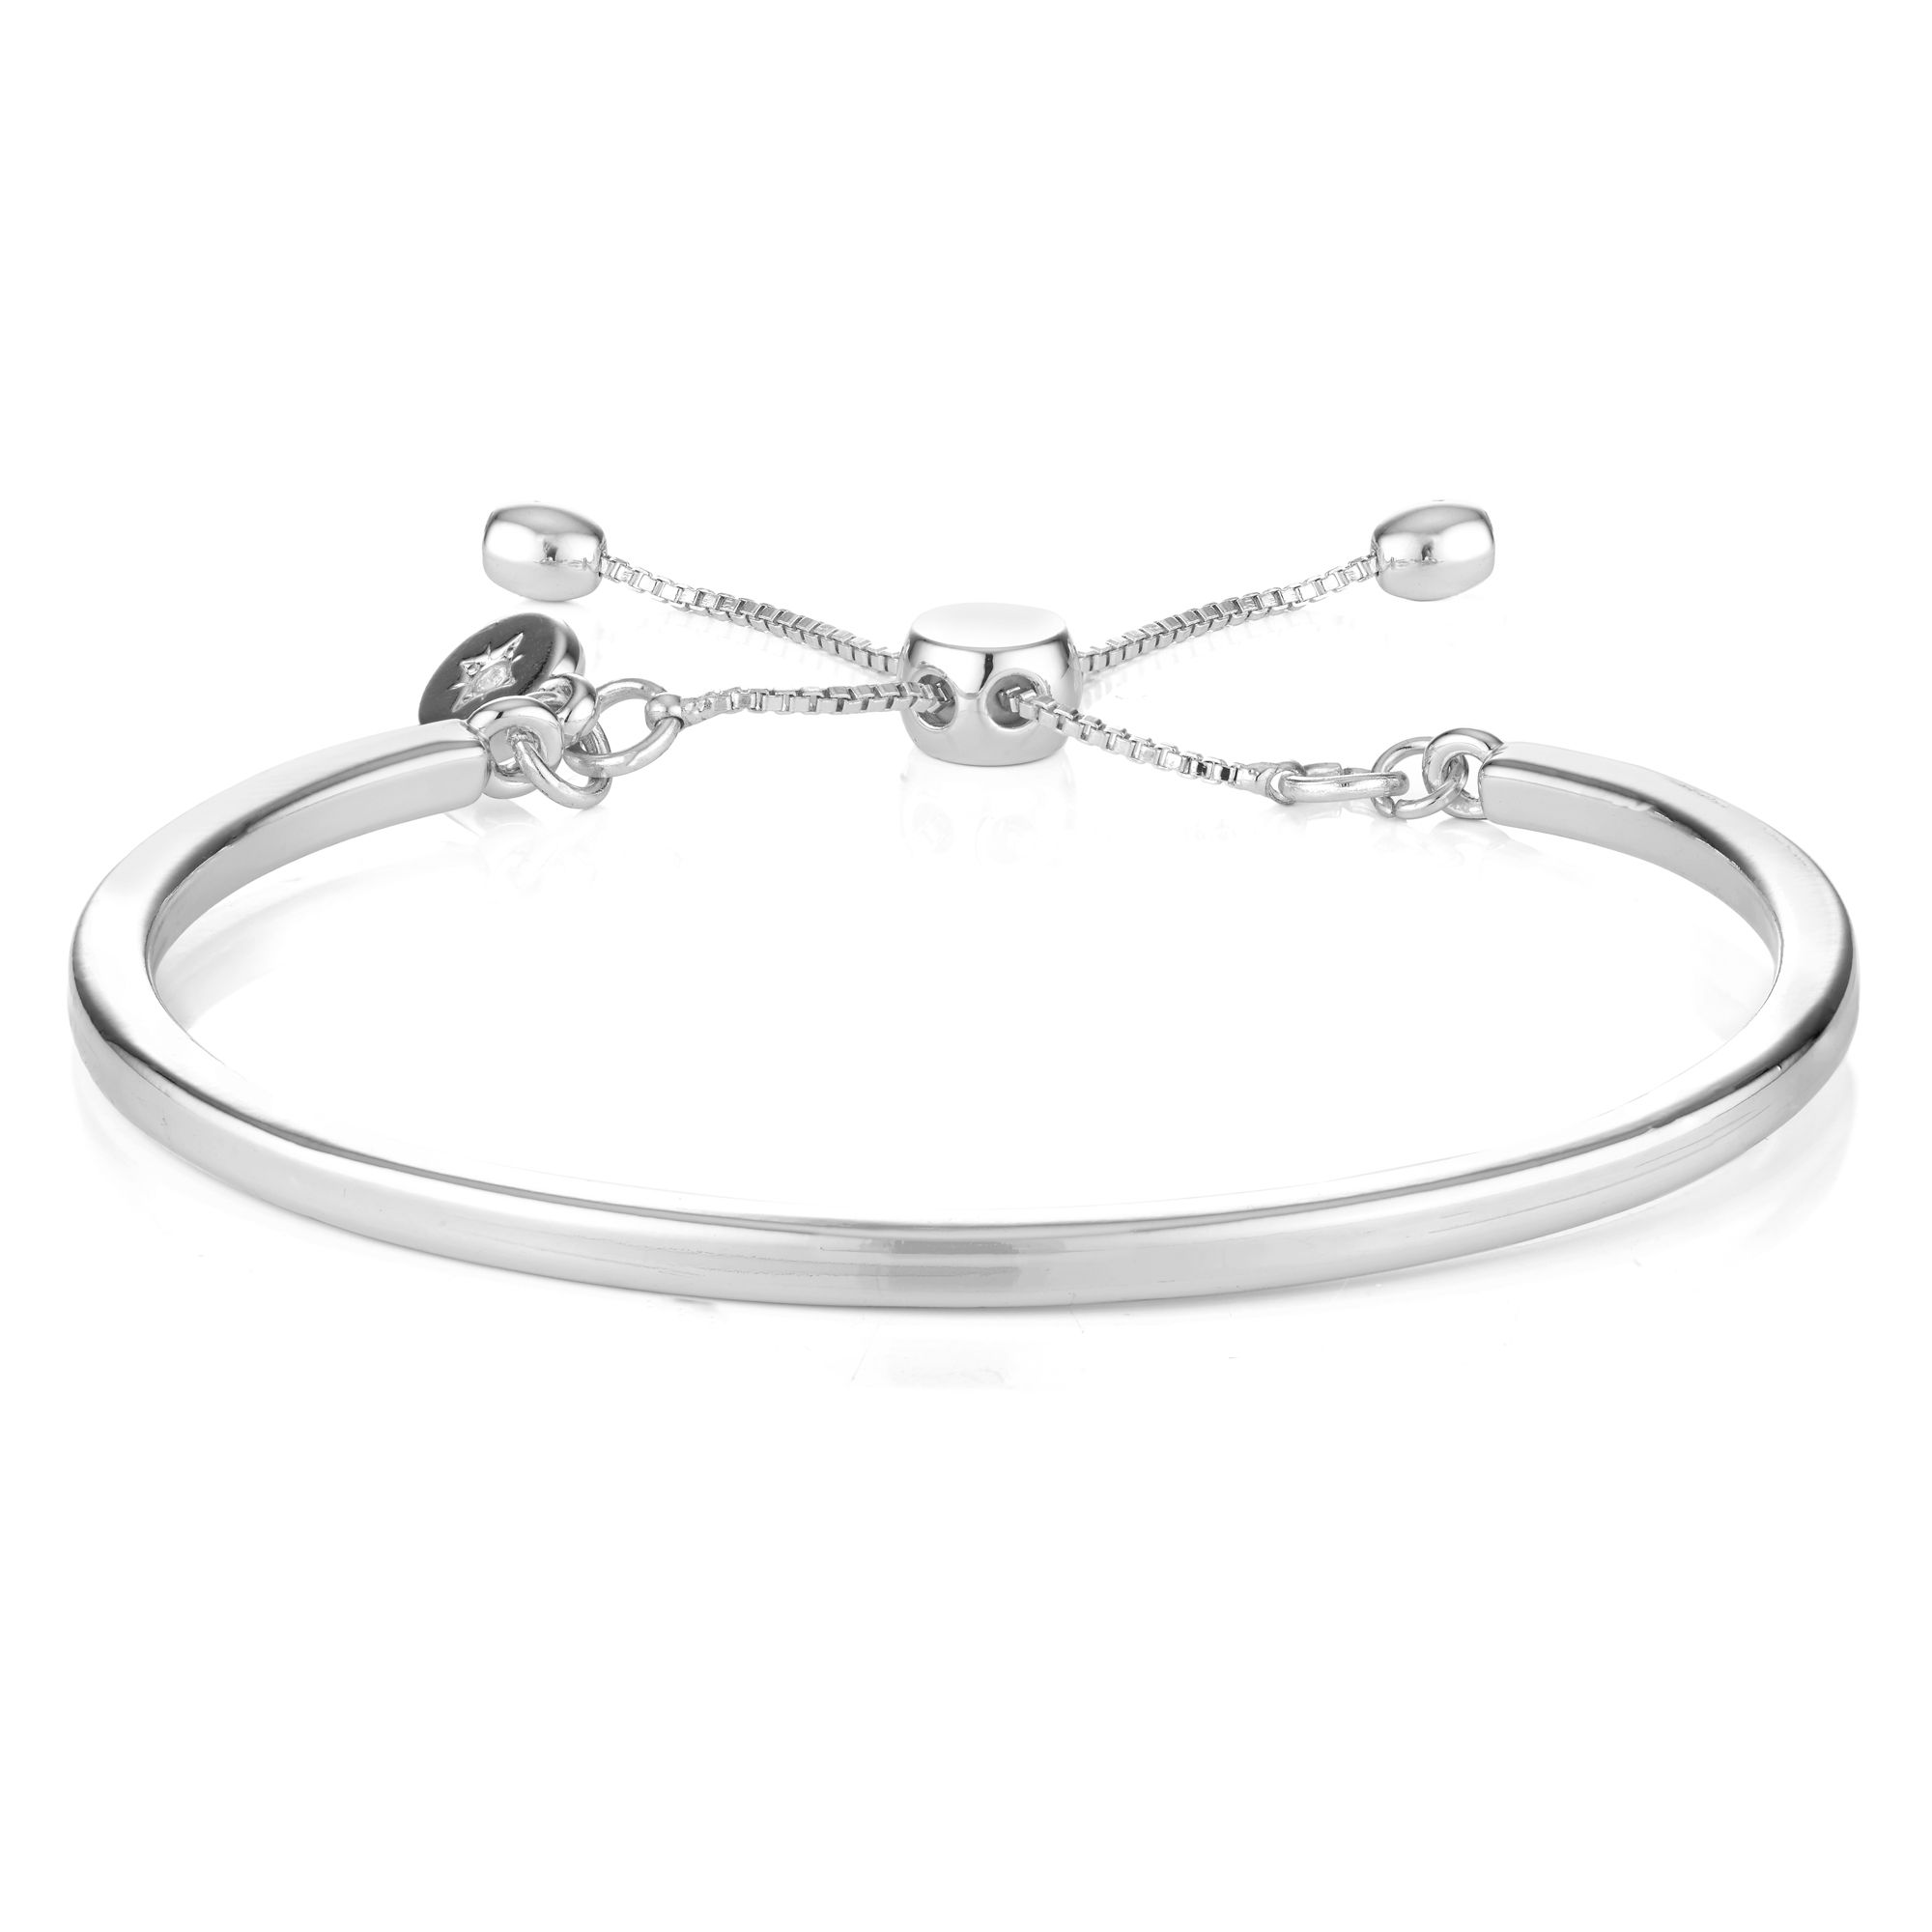 Buckley London Piccadilly Bangle - Silver